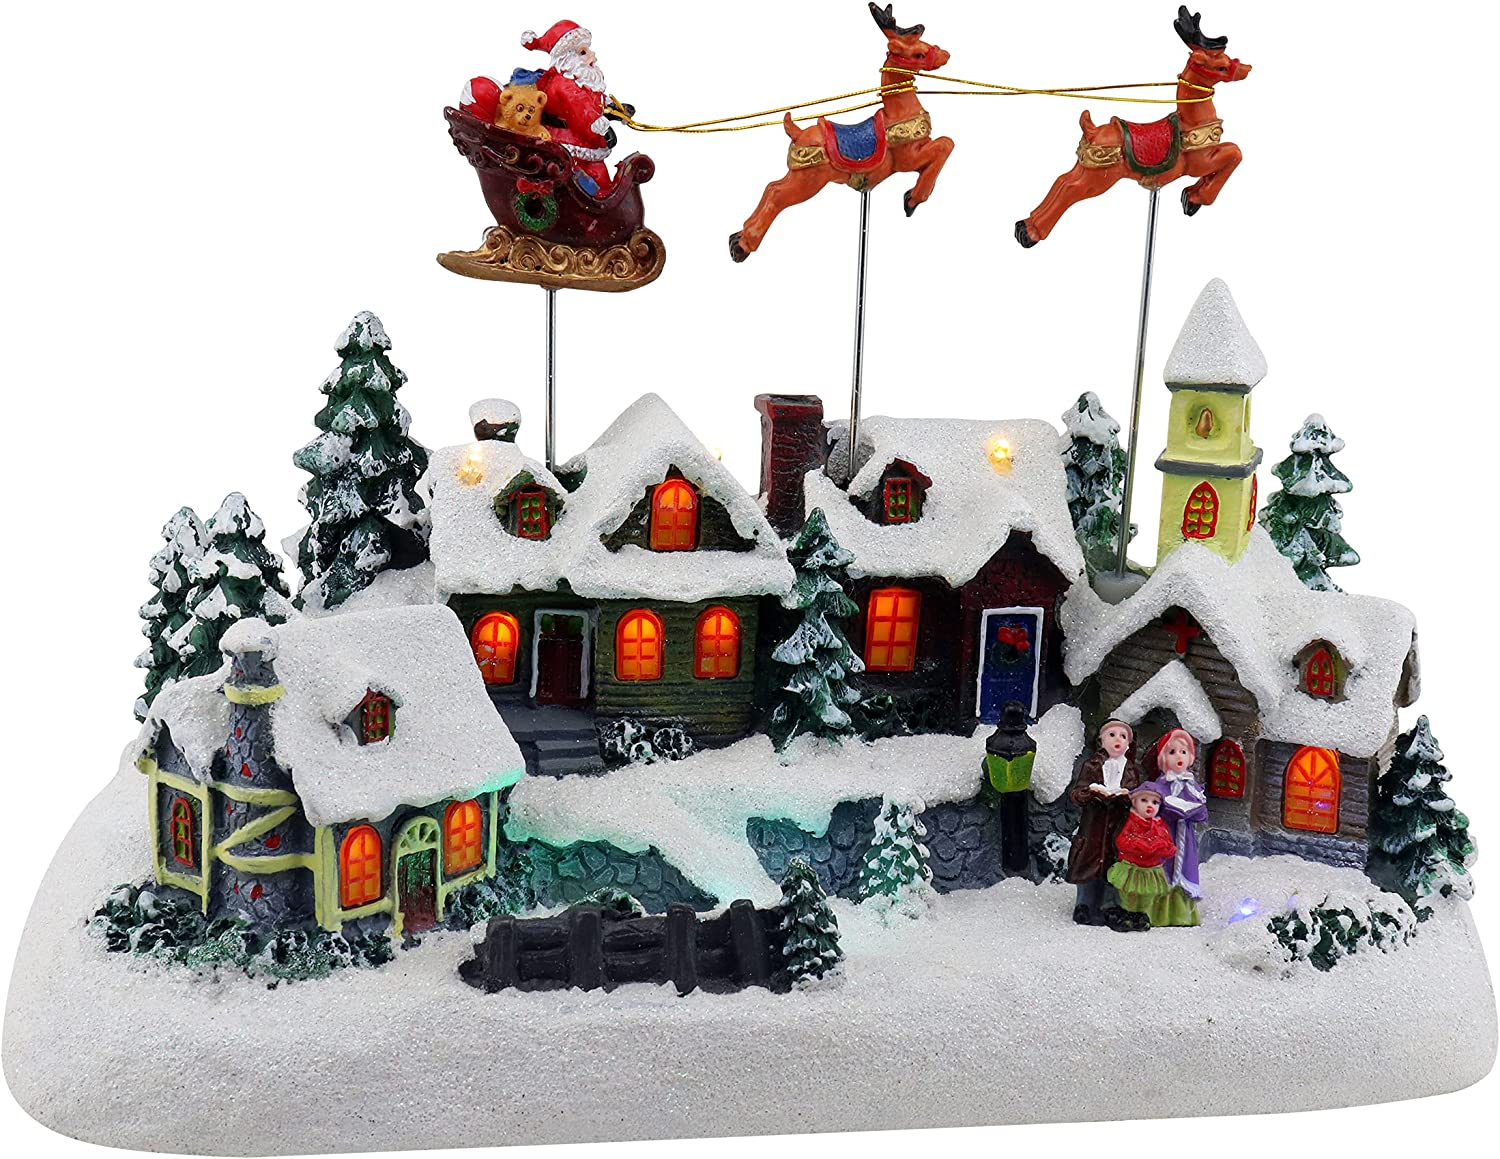 Animated Santa & Reindeer Sleigh Christmas Village | Pre-lit Musical Christmas Village | Perfect Addition to Your Christmas Indoor Decorations & Holiday Displays